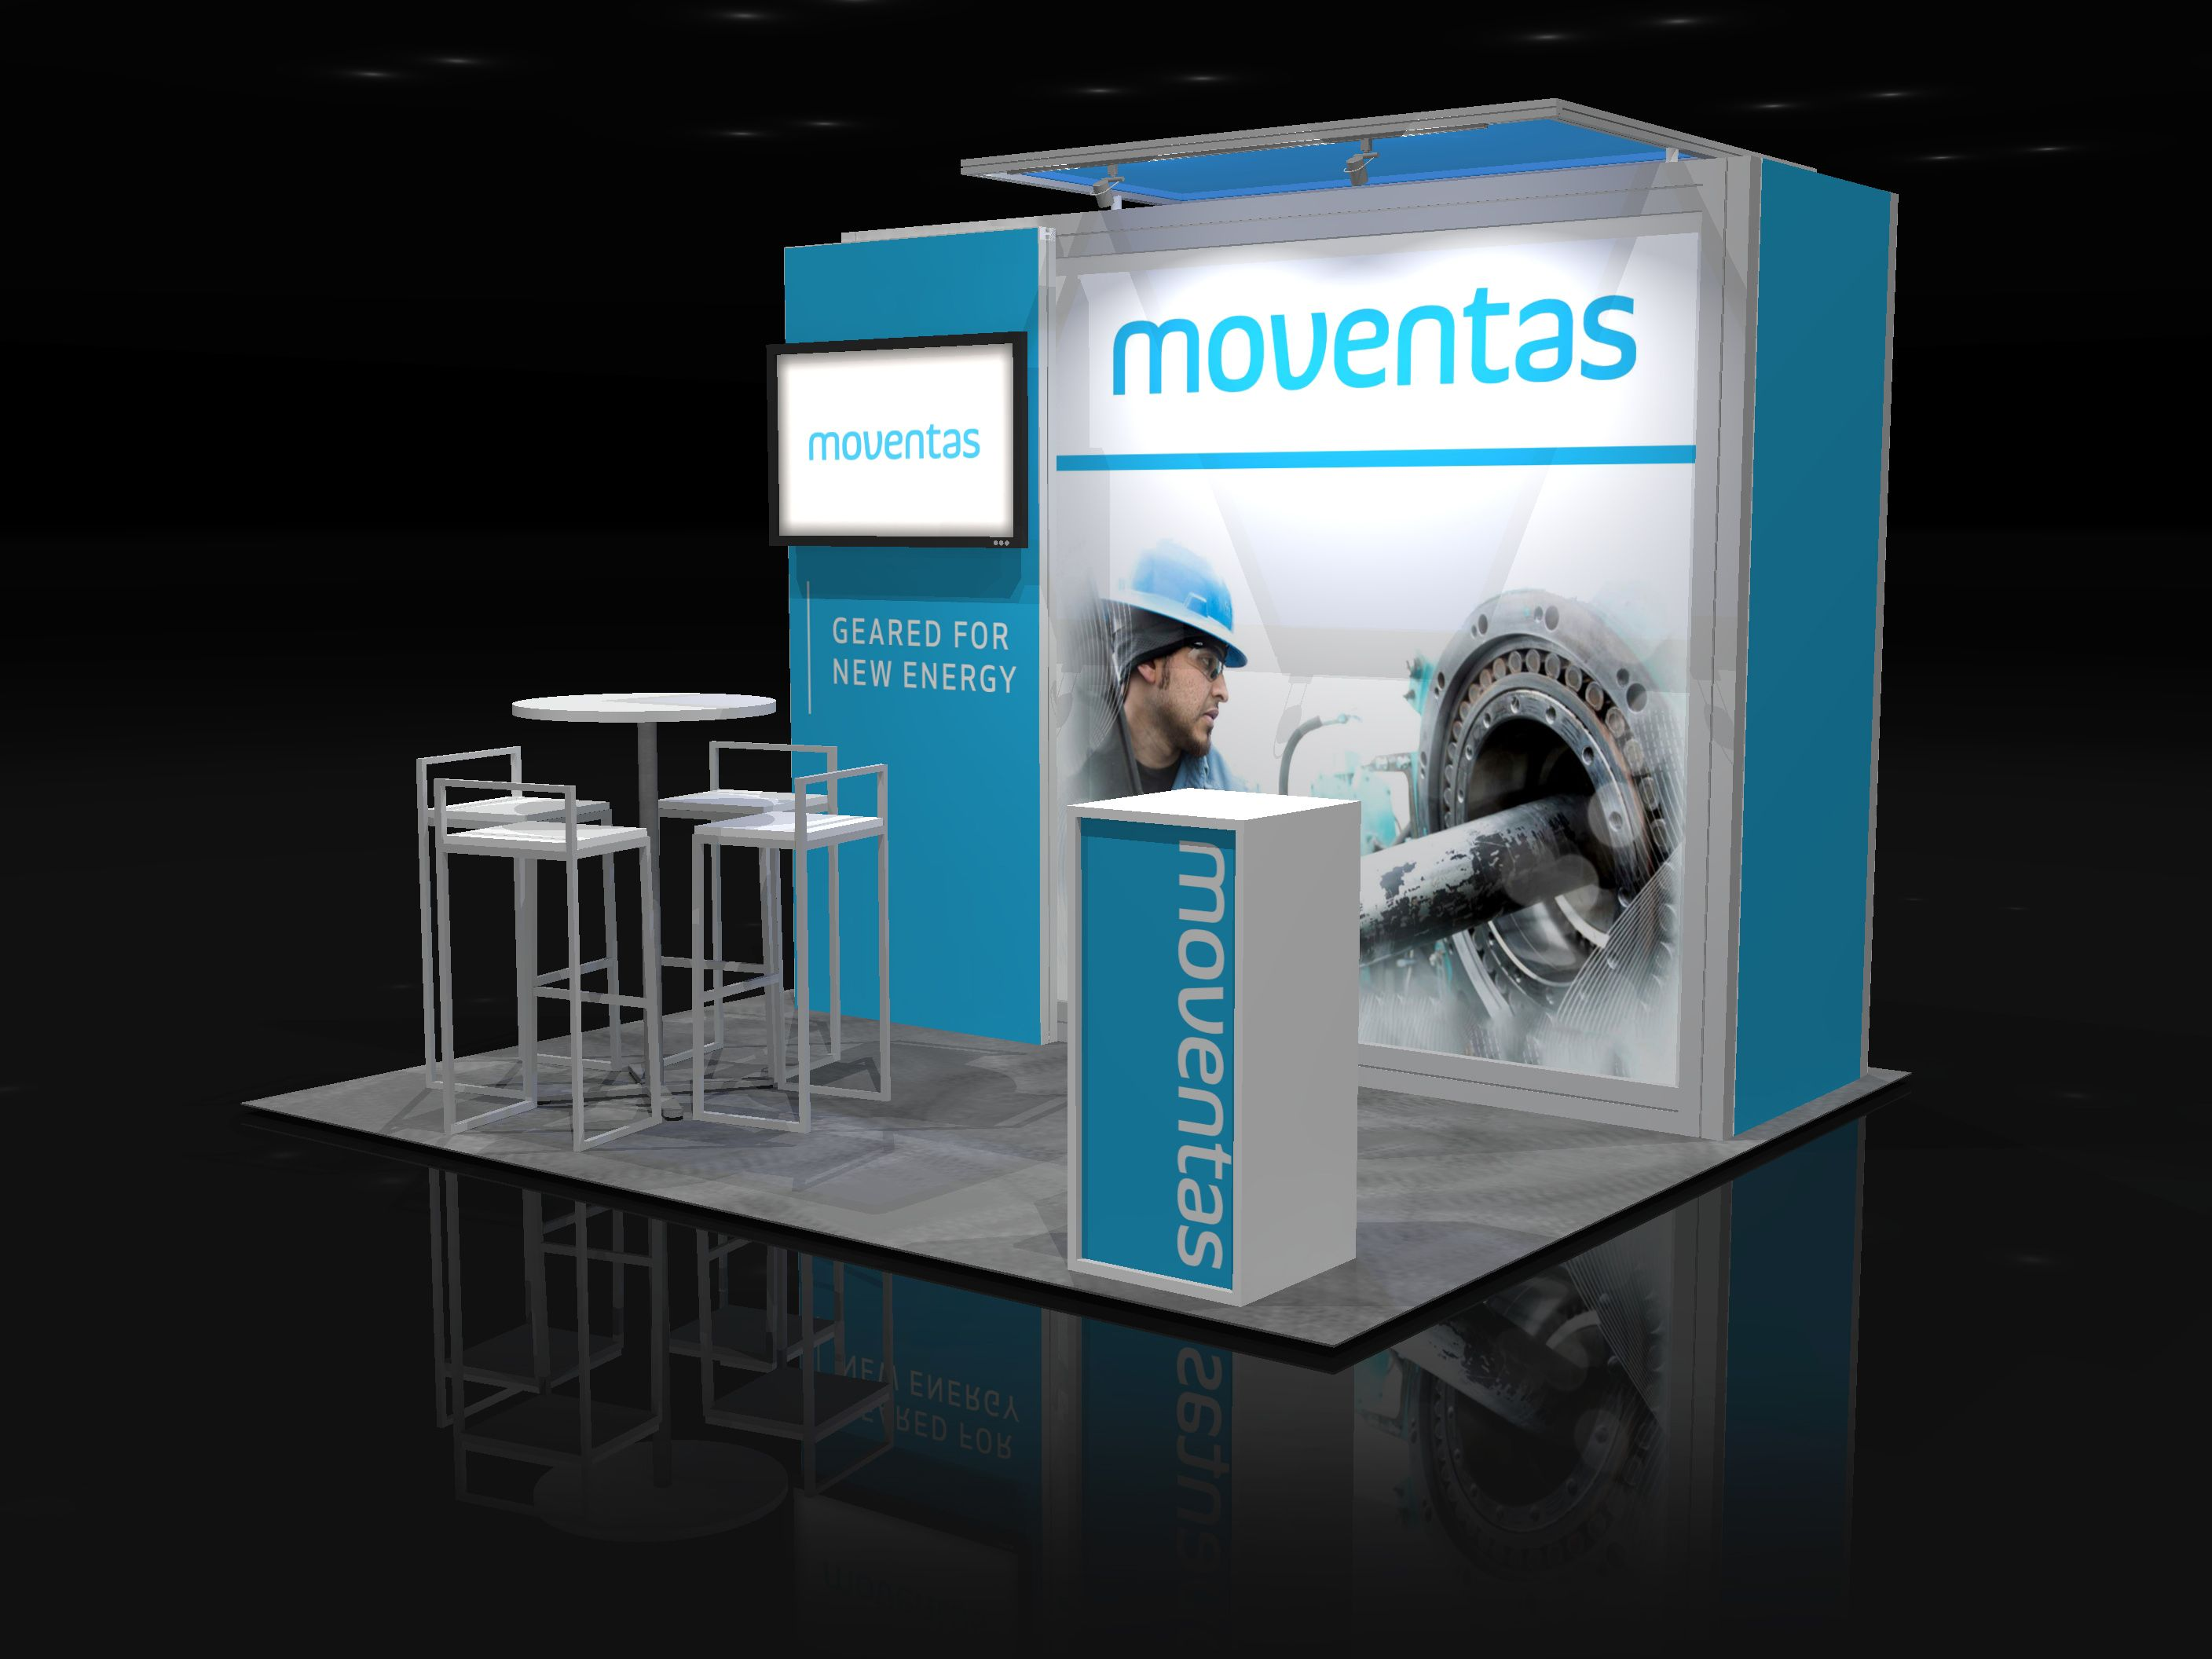 Http Exhibitrents Com Product Move003 10x10 Trade Show